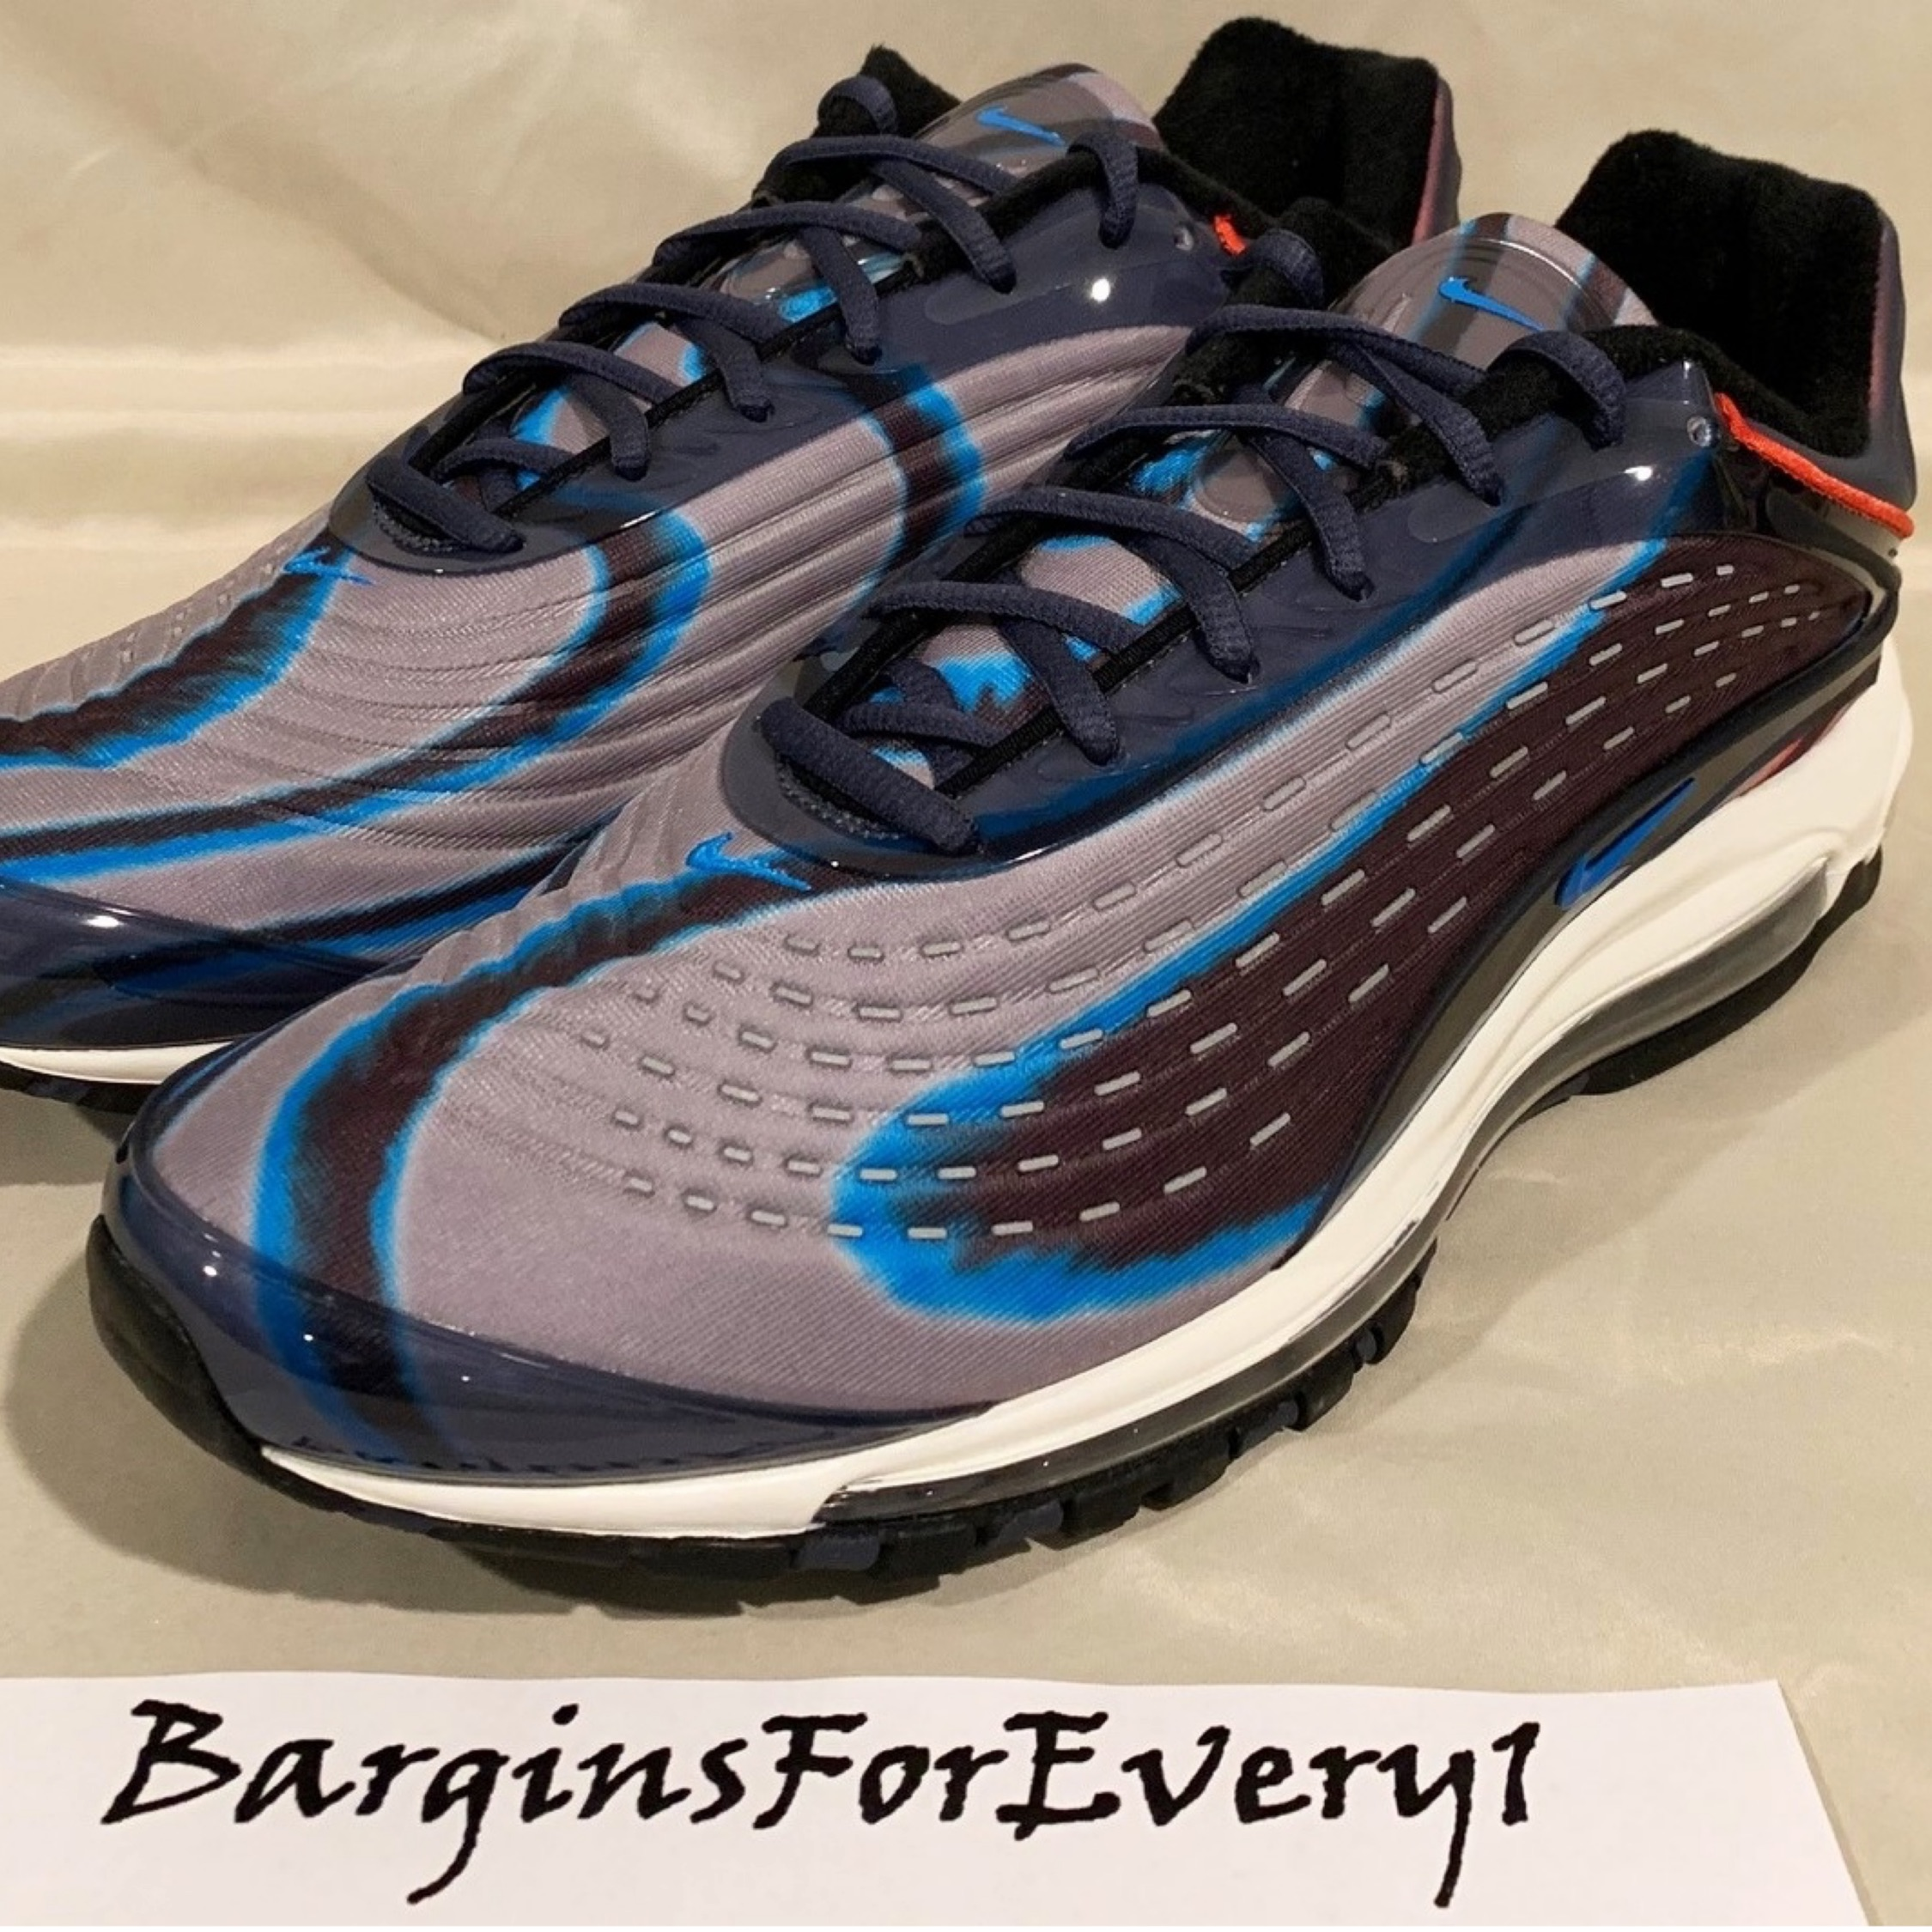 New Nike Air Max Deluxe Thunder BluePhoto Blue